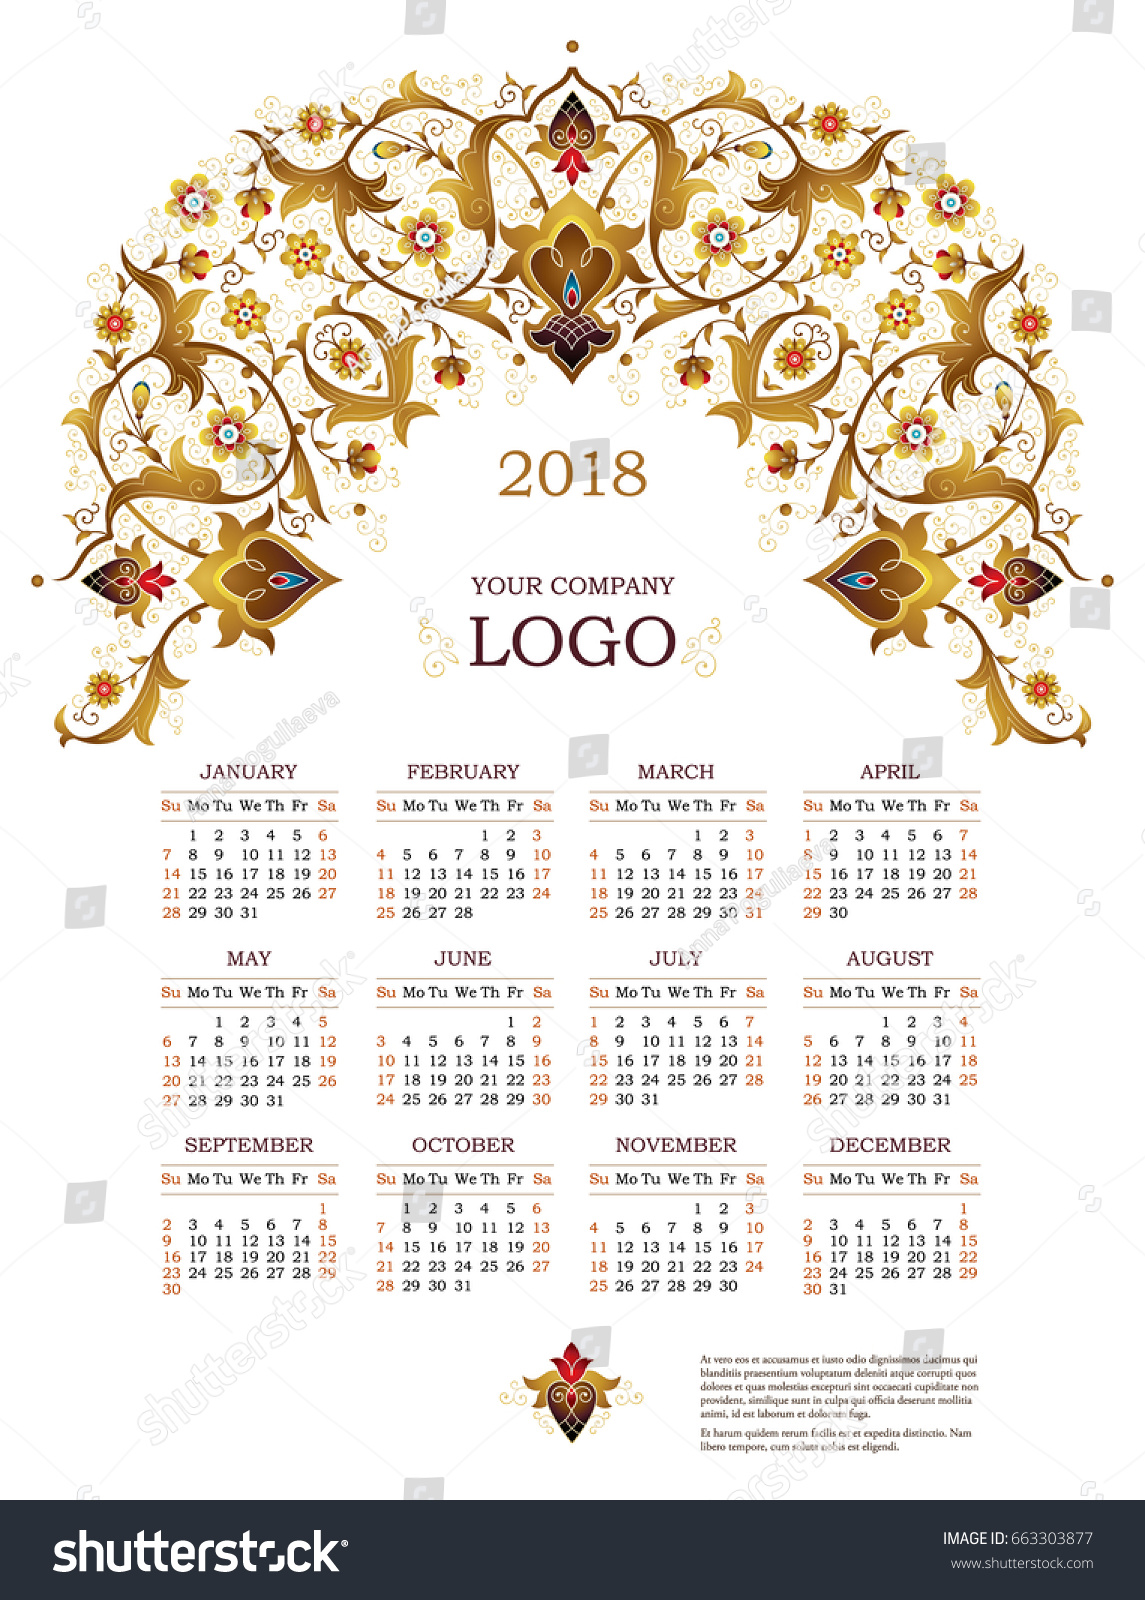 Calendar Vintage Vector : Vector calendar ornate decorated stock